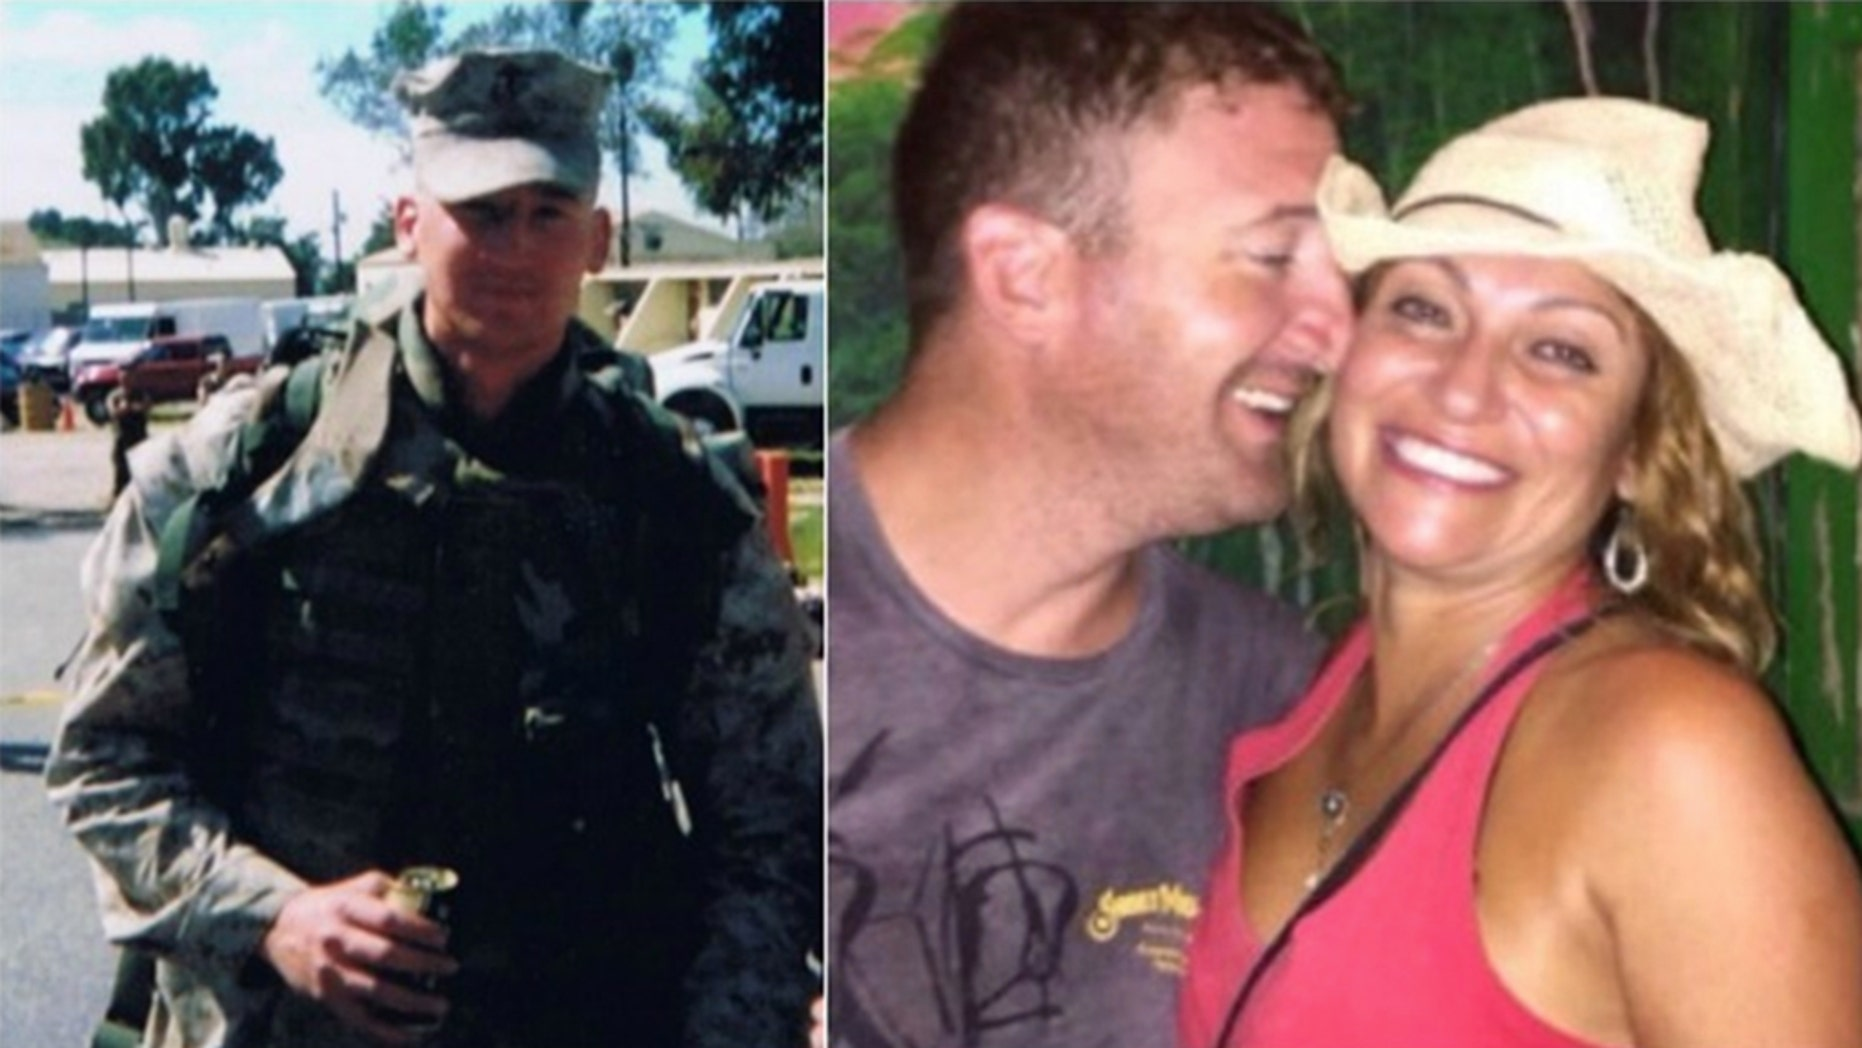 The bodies of Drew DeVoursney, 36, a U.S. Marine veteran from Georgia, and his Canadian girlfriend, Francesca Matus, 52, were found in Belize a year ago. Their murders remain unsolved. (Fox5 Atlanta / Facebook)